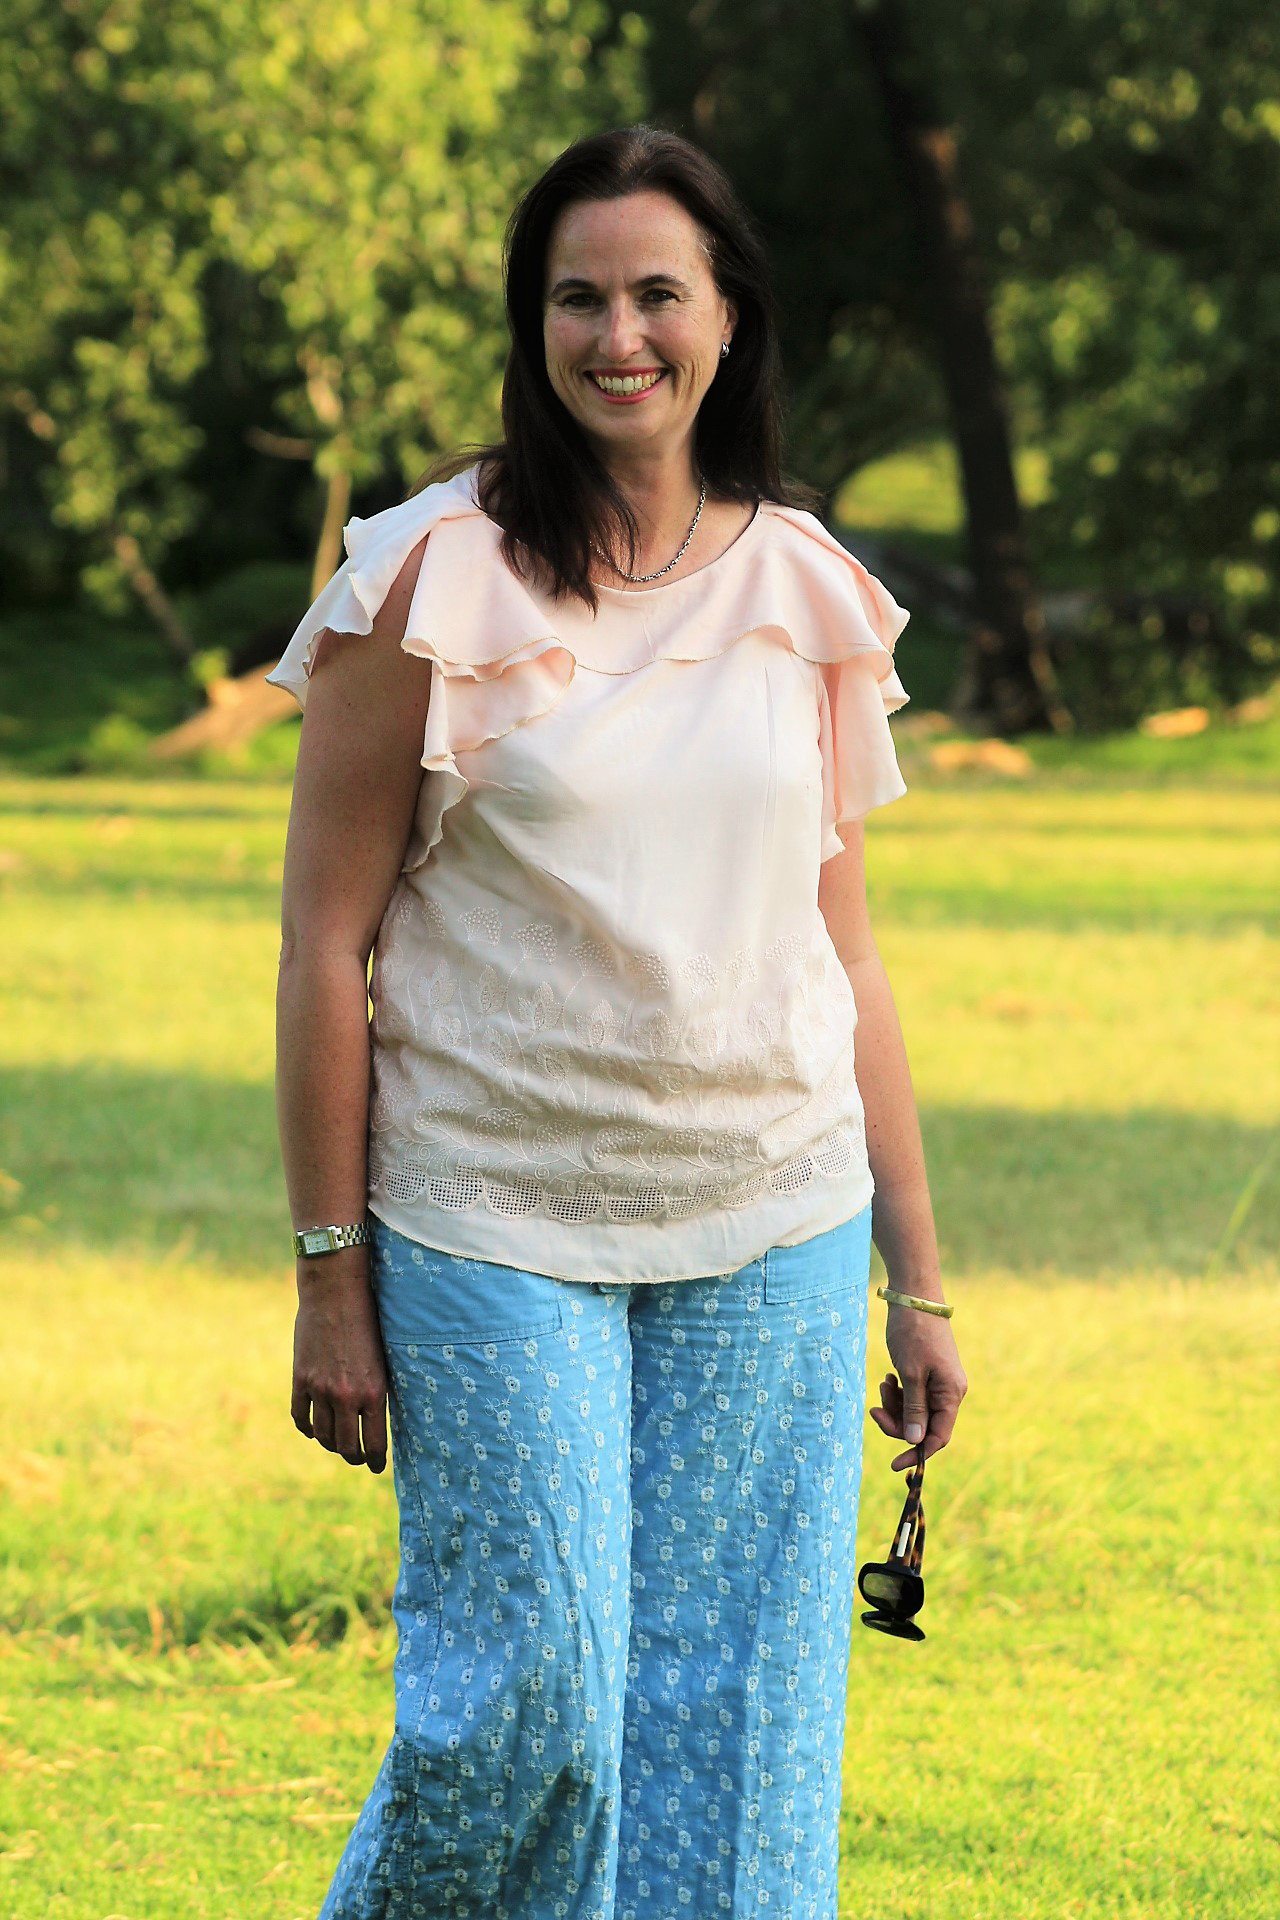 """Genevieve Grossmann - """"I'm totally in love with the femininity and softness of this top. The construction of the flounce is just brilliant, and able to make the most beautiful top, which actually fits me. As a busy mum, I love that I can wear this and feel nice, it's such a winner for me."""""""